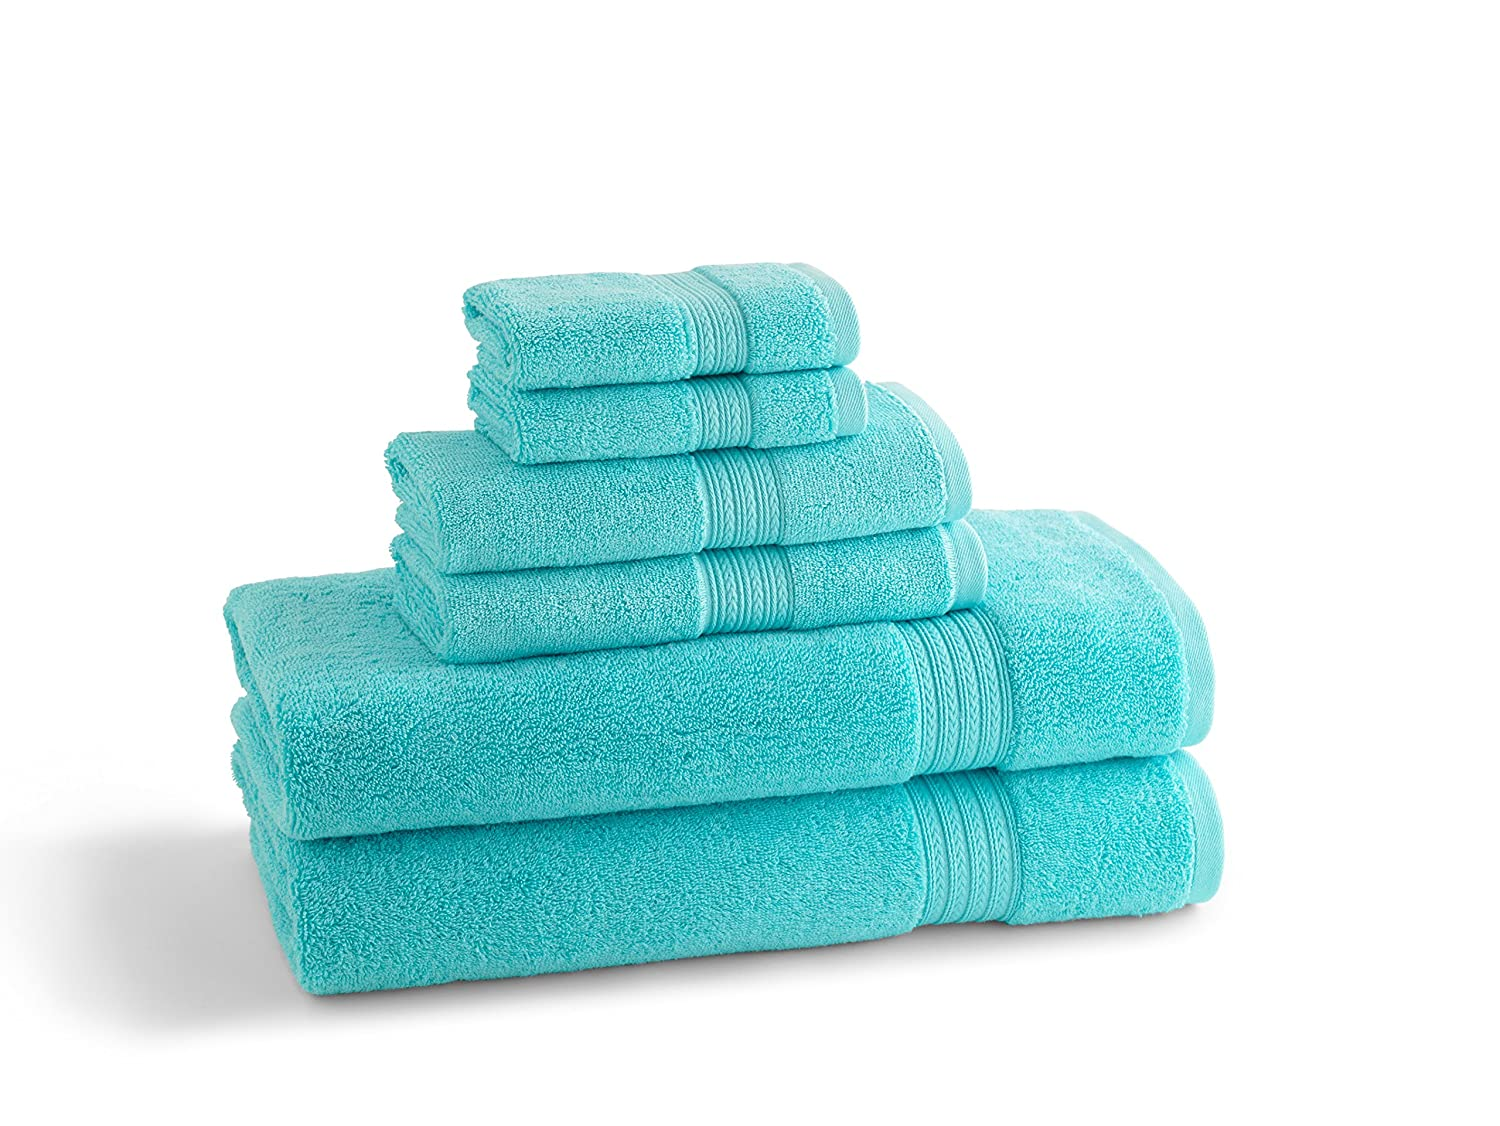 Kassatex Kassadesign Brights Collection Bath Towel, Caribbean Blue kassatex kassadesign brights collection bath towel caribbean blue